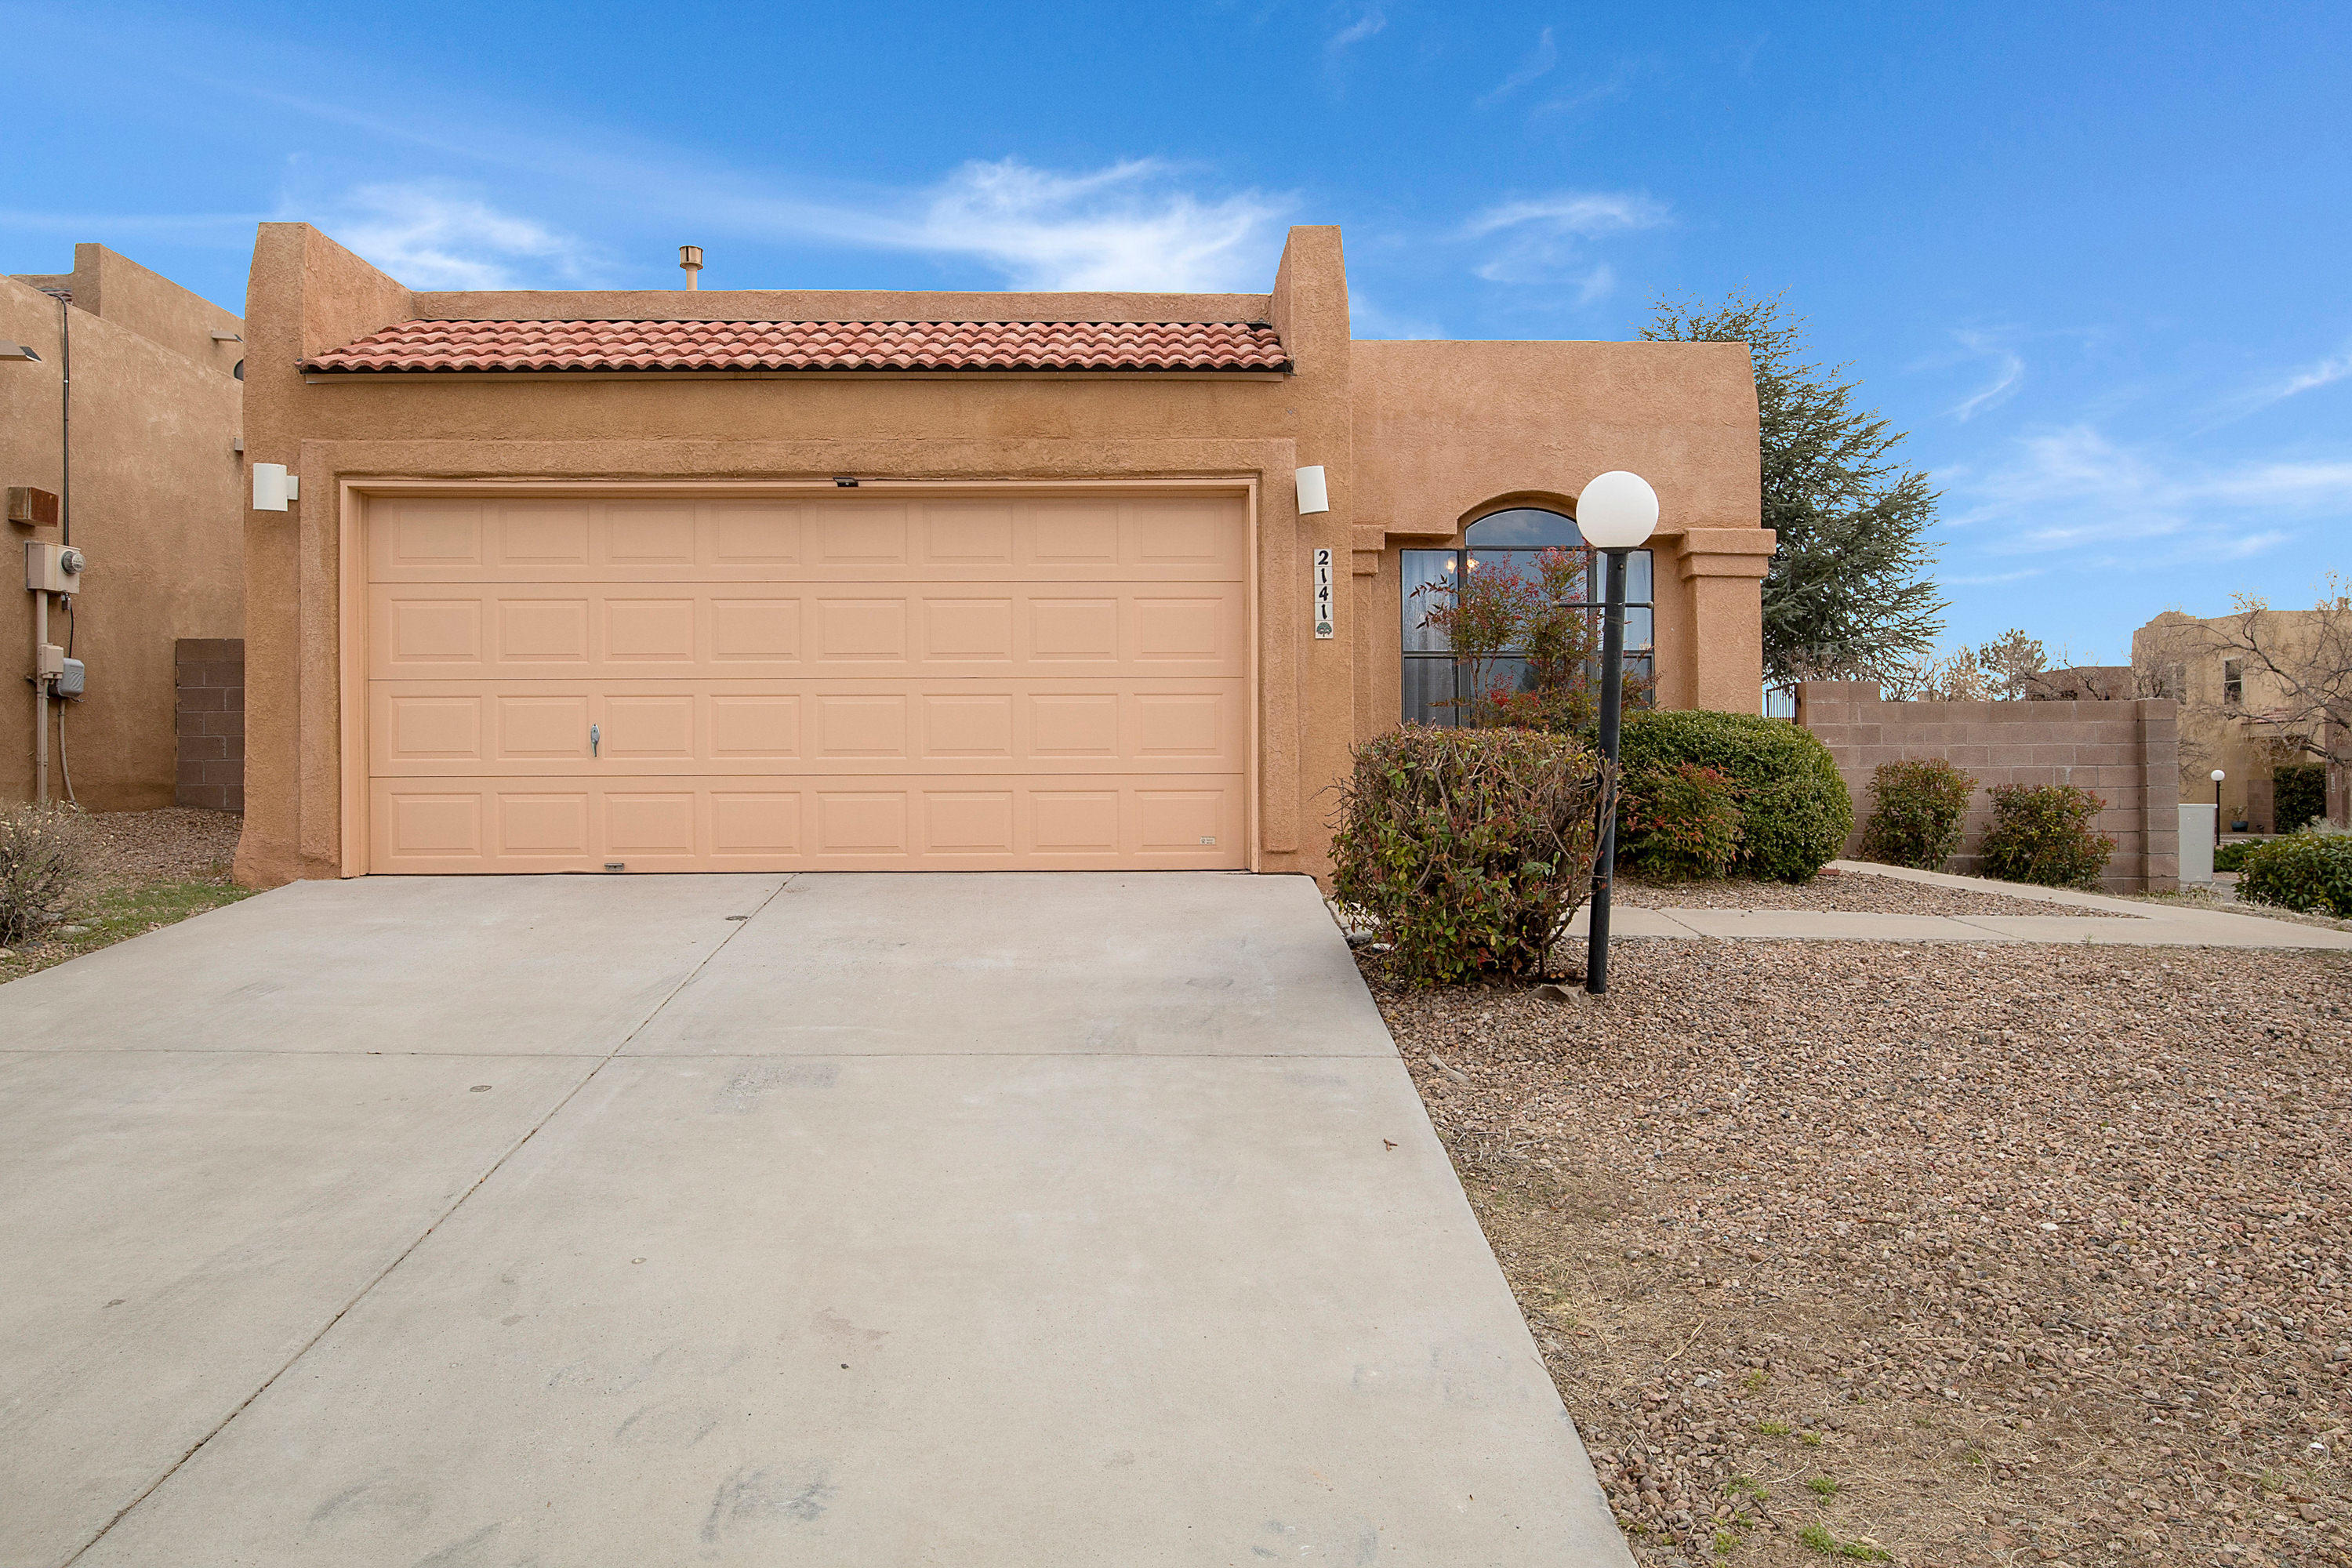 Come See this Beautiful Sandia Heights home on a corner lot! Enjoy the raised ceilings, laminate flooring, granite counter tops, corner fireplace and hand peeled vigas in the entry. This Southwestern charmer is close to trails for hiking, biking, or walking, sits in quiet neighborhood and has an abundance of natural light!